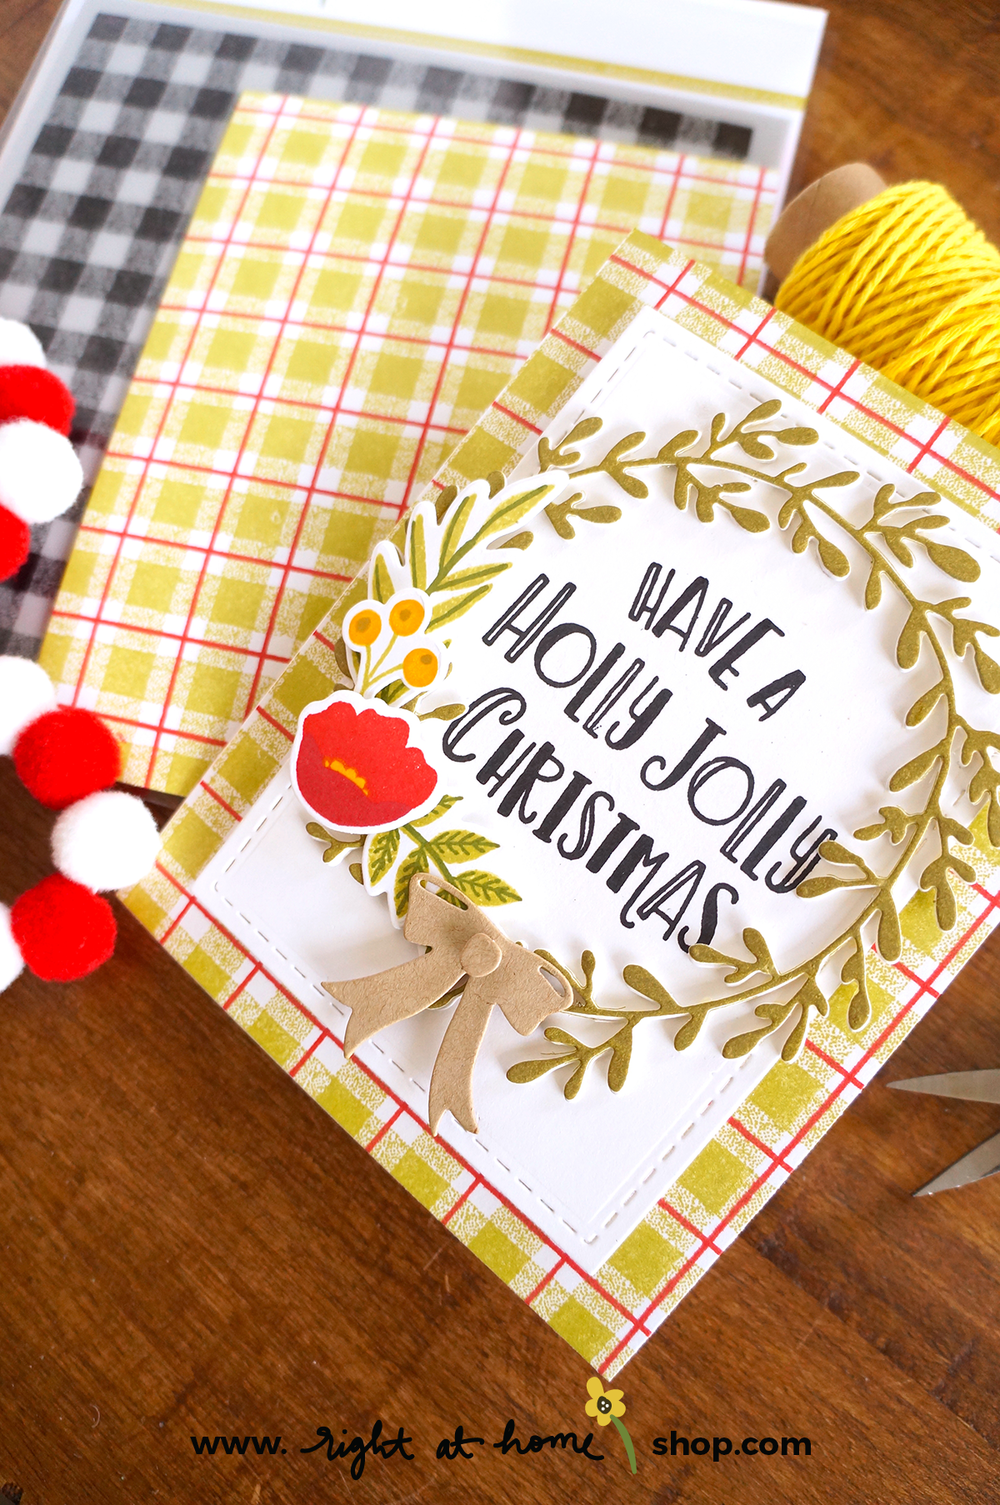 Click to view this Have a Holly Jolly Christmas Gingham Background card created using the Right at Home Gingham Background, Fa La La and Freshly Picked stamp sets. All details on www.rightathomeshop.com/blog.